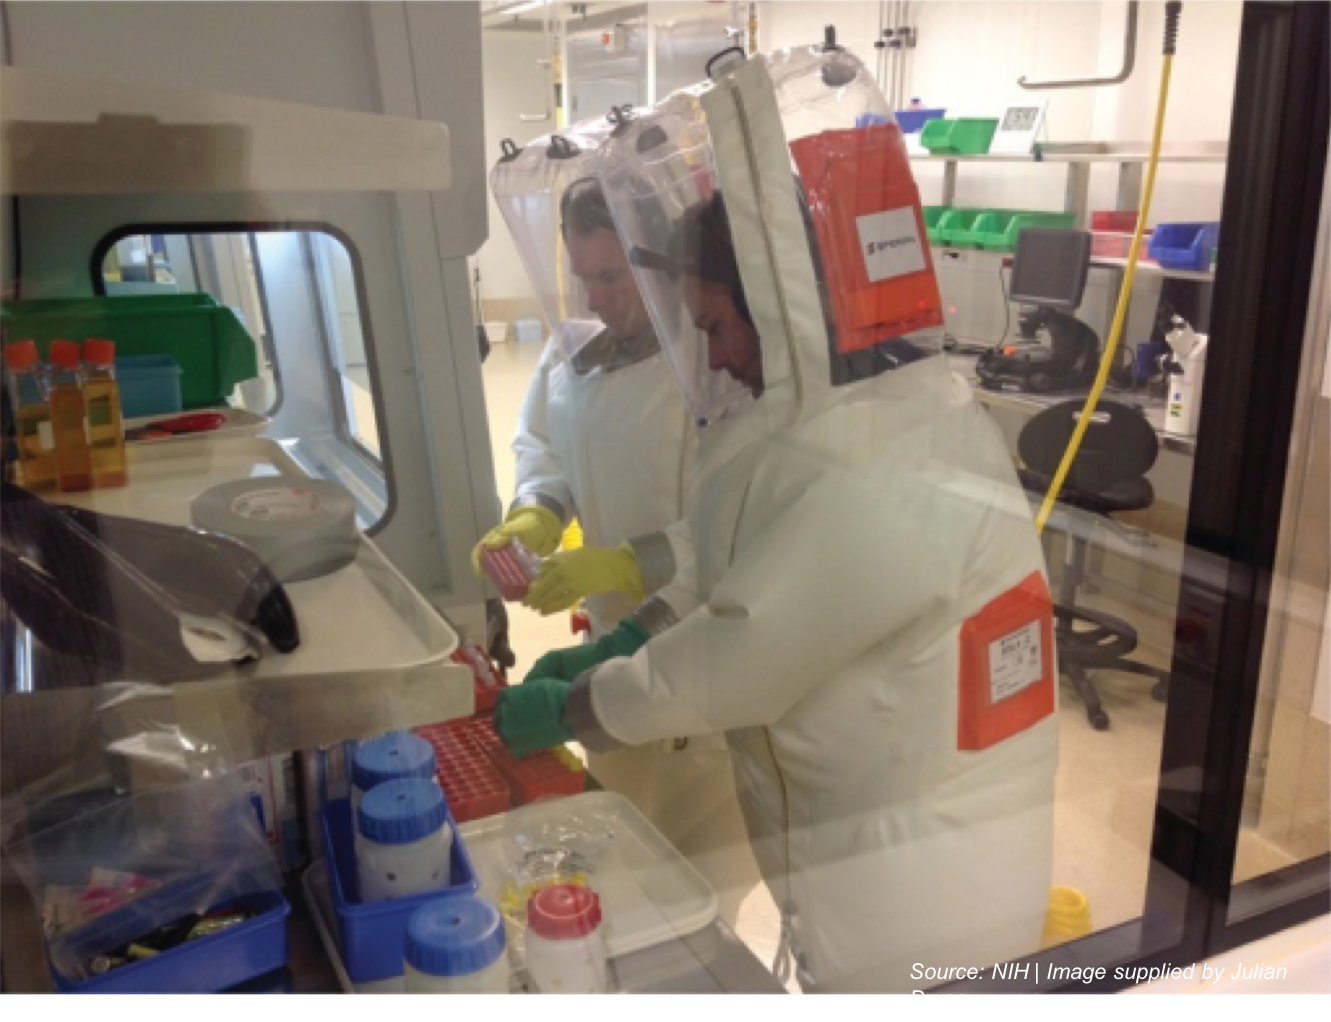 As Ebola Research Comes to Boston, Scientists Weigh Risks